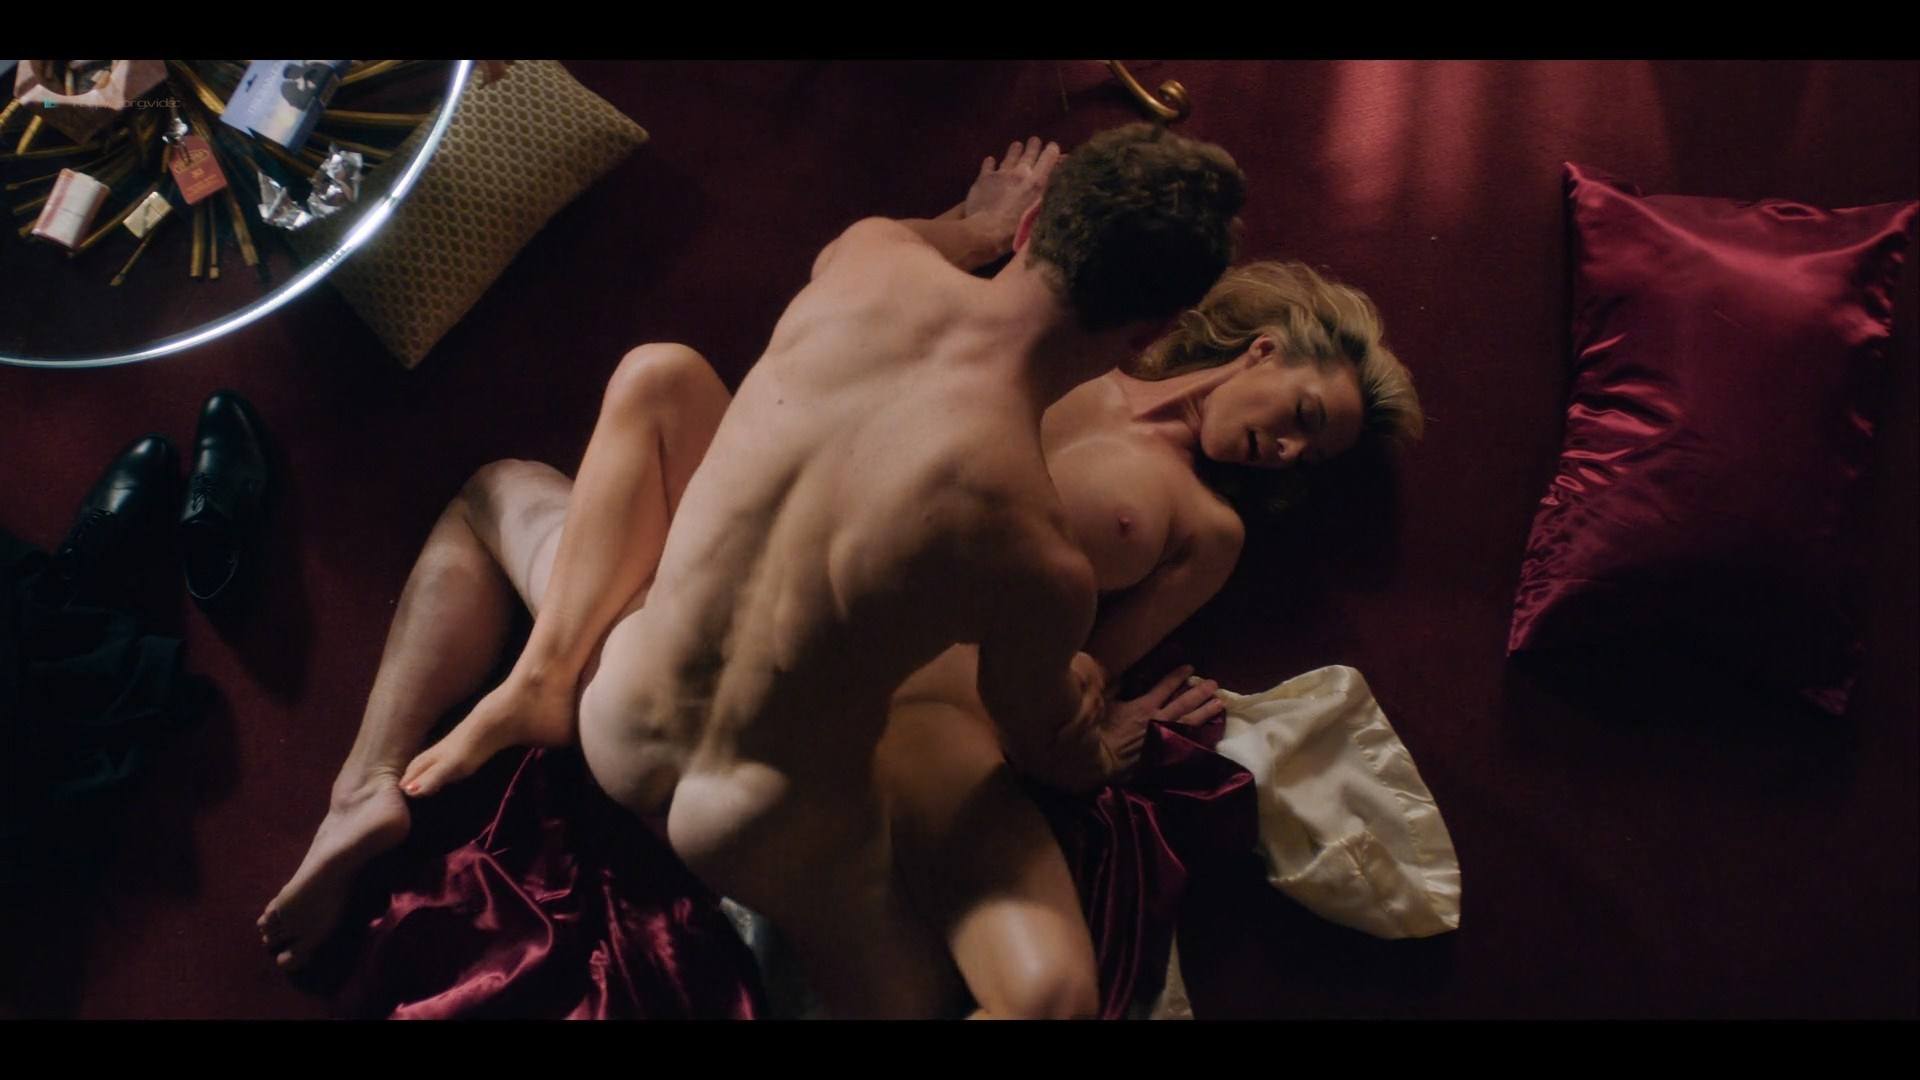 0710213425772_06_Betty-Gilpin-nude-sex-Kate-Nash-sex-others-hot-Glow-2019-S3-HD-1080p-0013.jpg